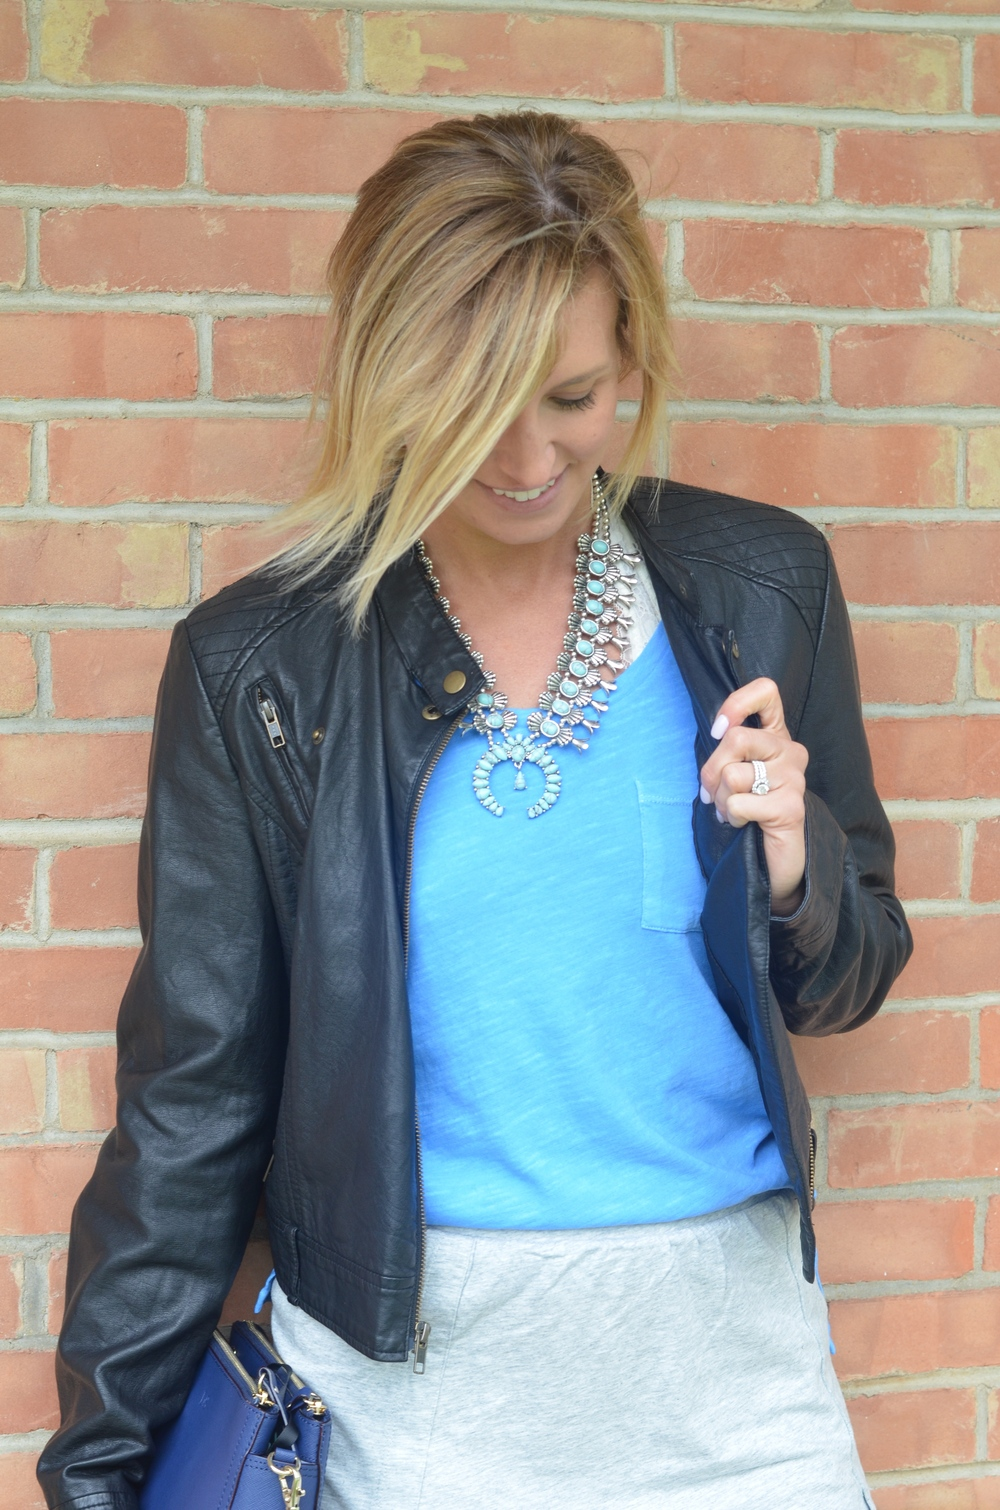 Skirt  HERE  // Top  HERE  or  HERE  // Jacket  HERE   or  HERE  //  Necklace  HERE  or  HERE